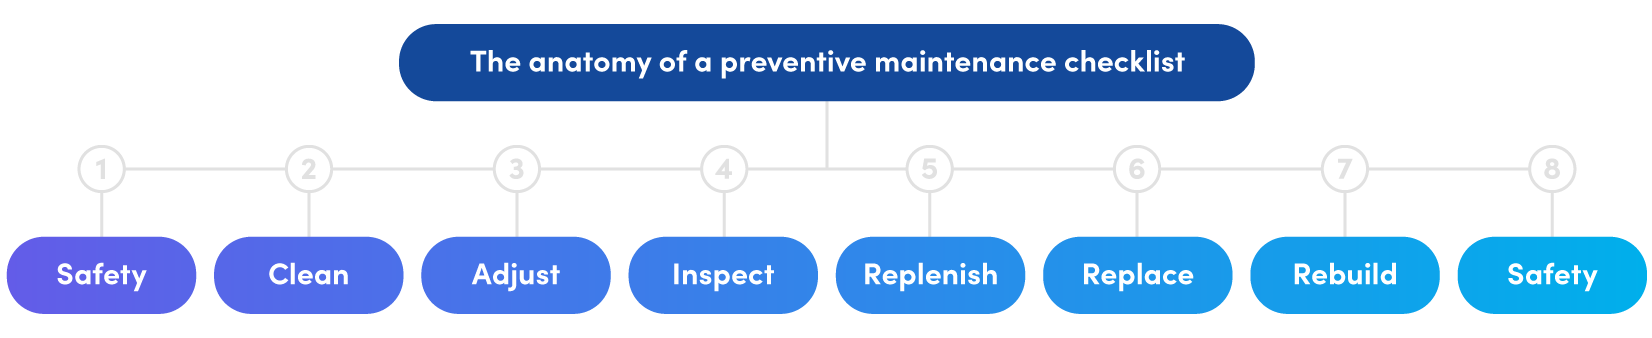 Description of tasks in a great preventive maintenance checklist: Safety, clean, adjust, inspect. replenish, replace, rebuild, safety